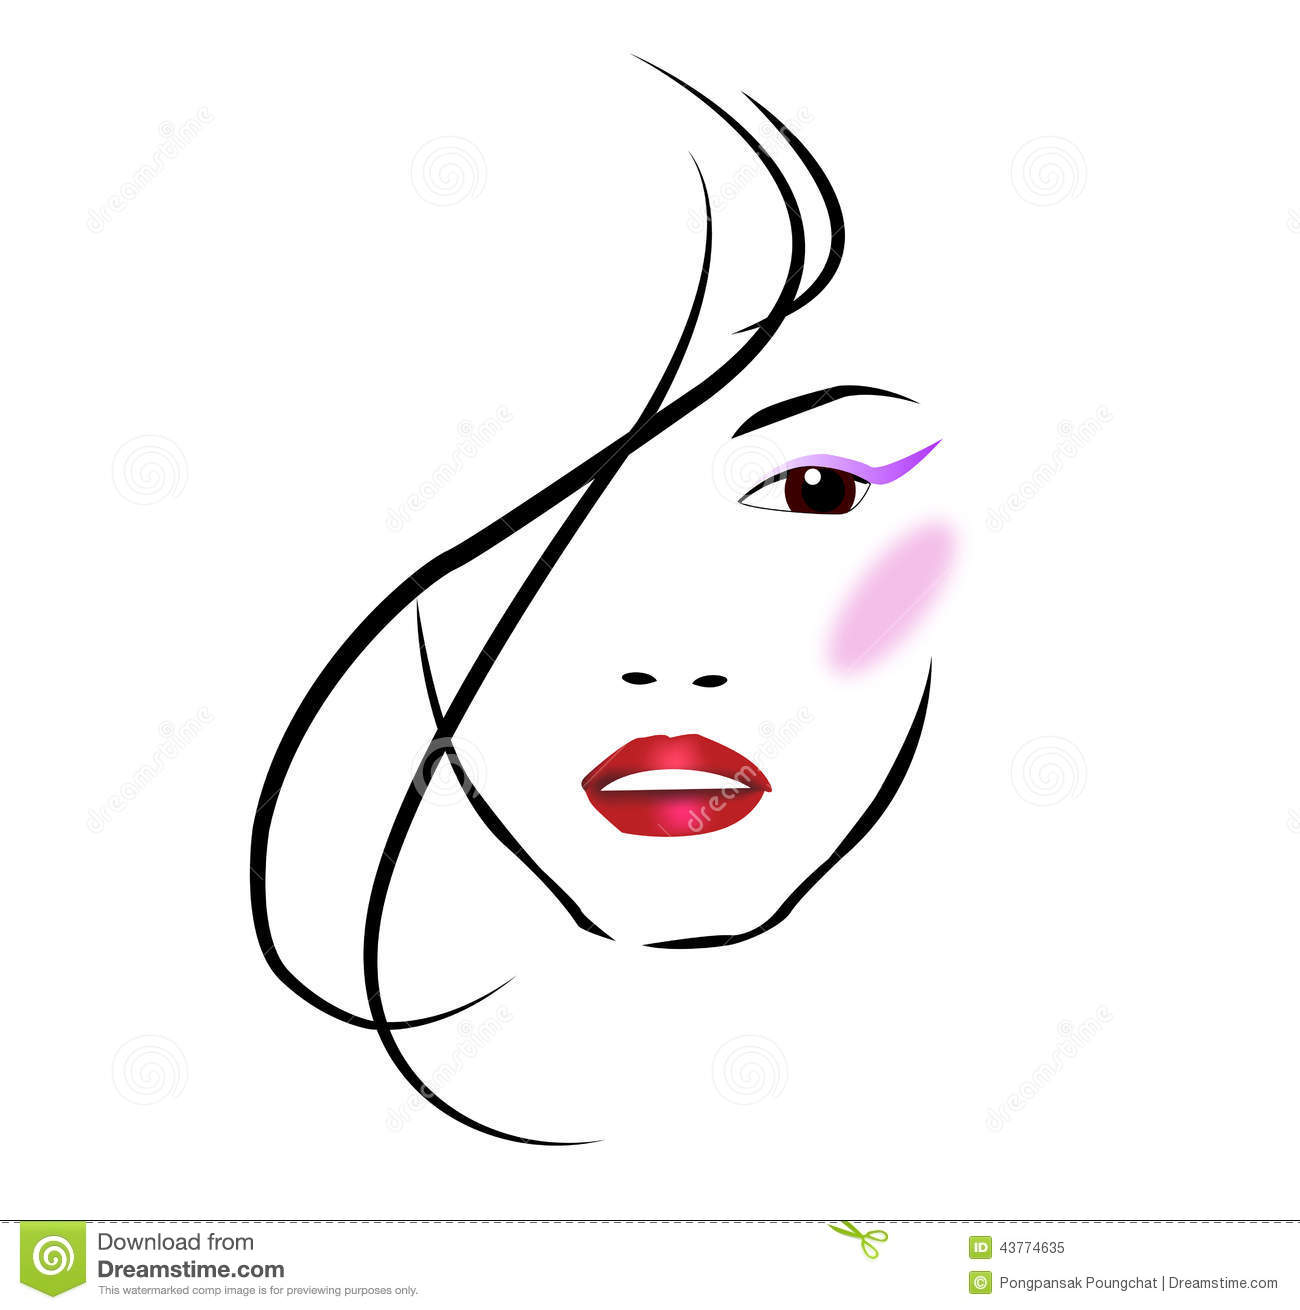 Beauty clipart #6, Download drawings